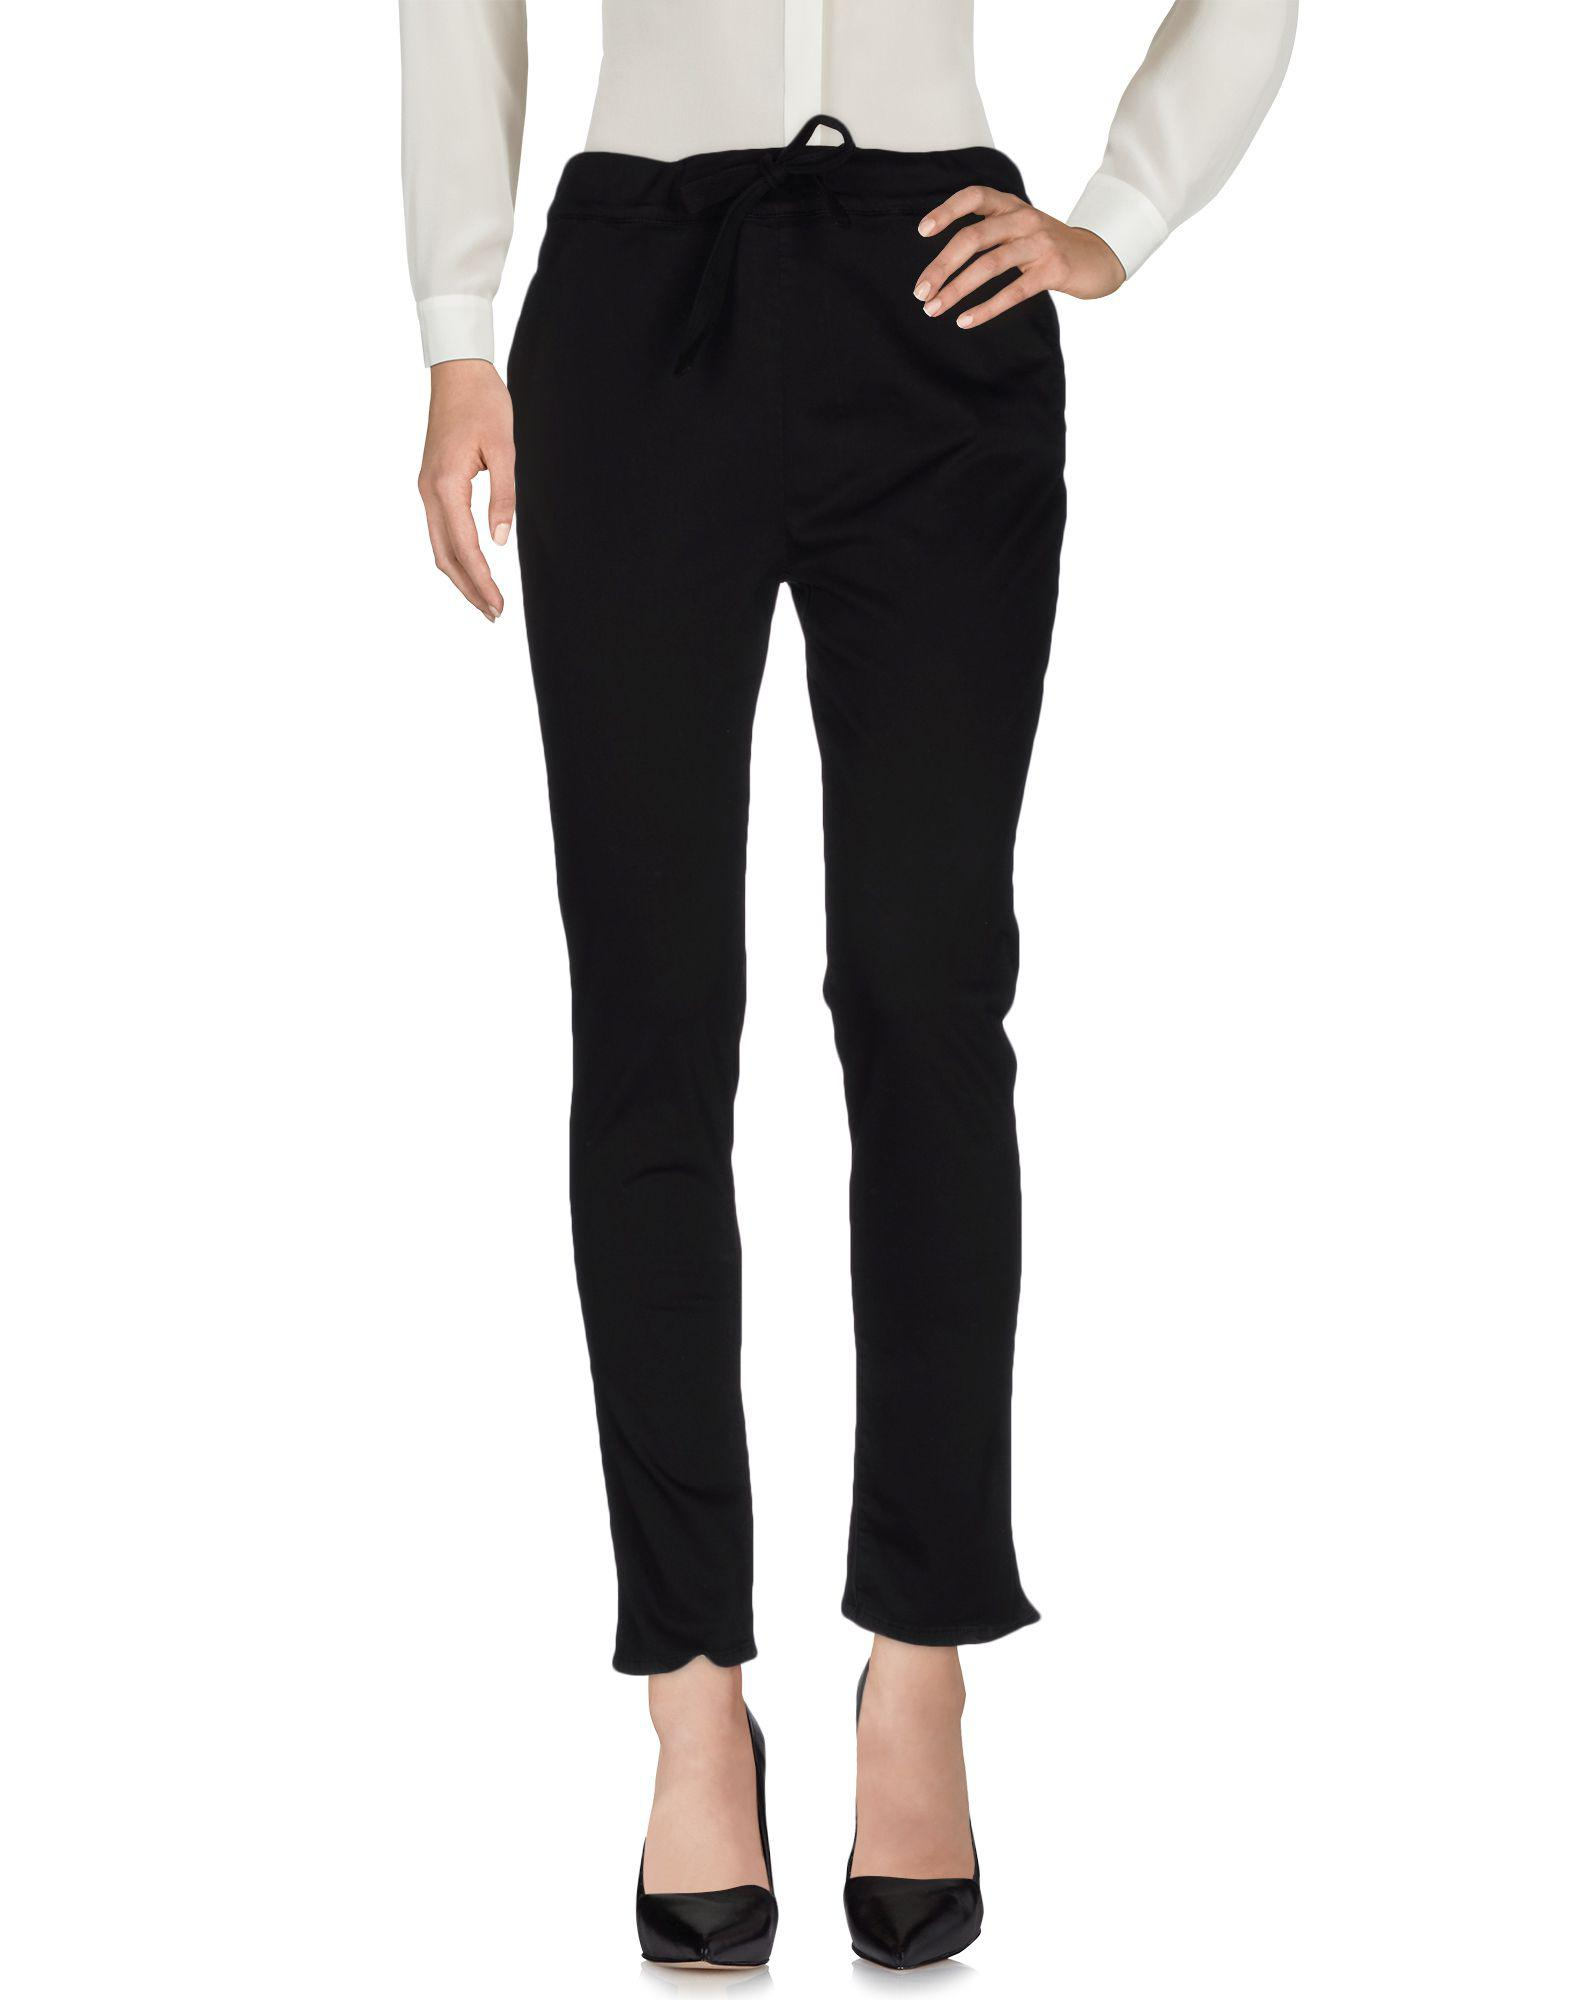 TROUSERS - Casual trousers Brockenbow Wddes